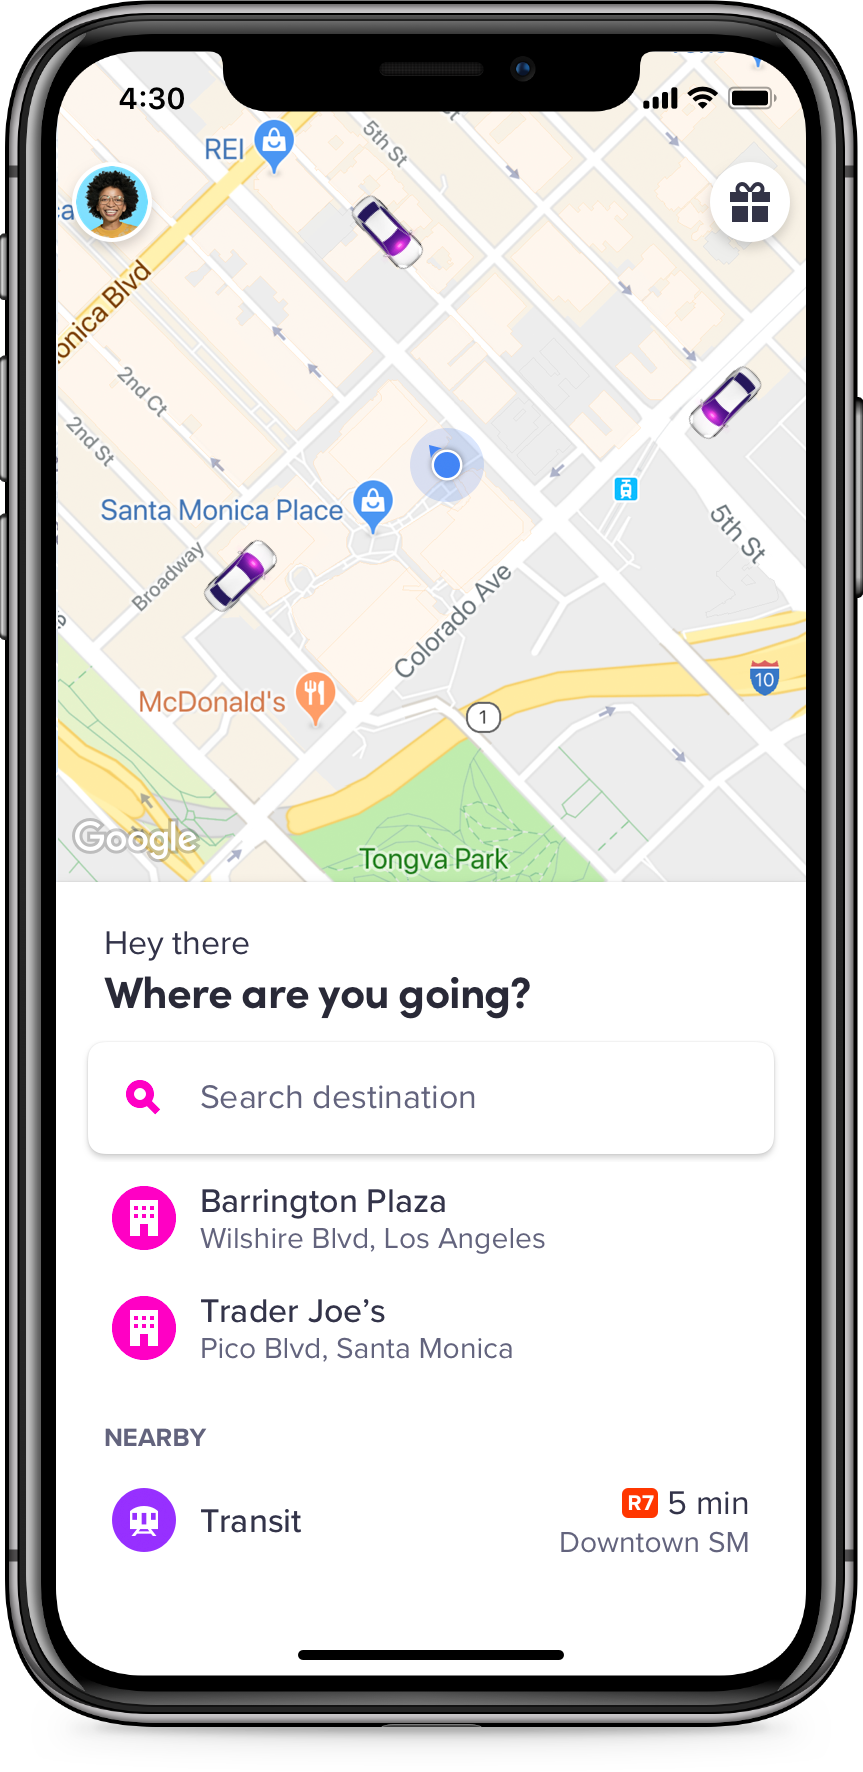 Riders who wish to use Lyft Scooters can use the app to locate and reserve  nearby scooters. (Image: Courtesy Lyft)